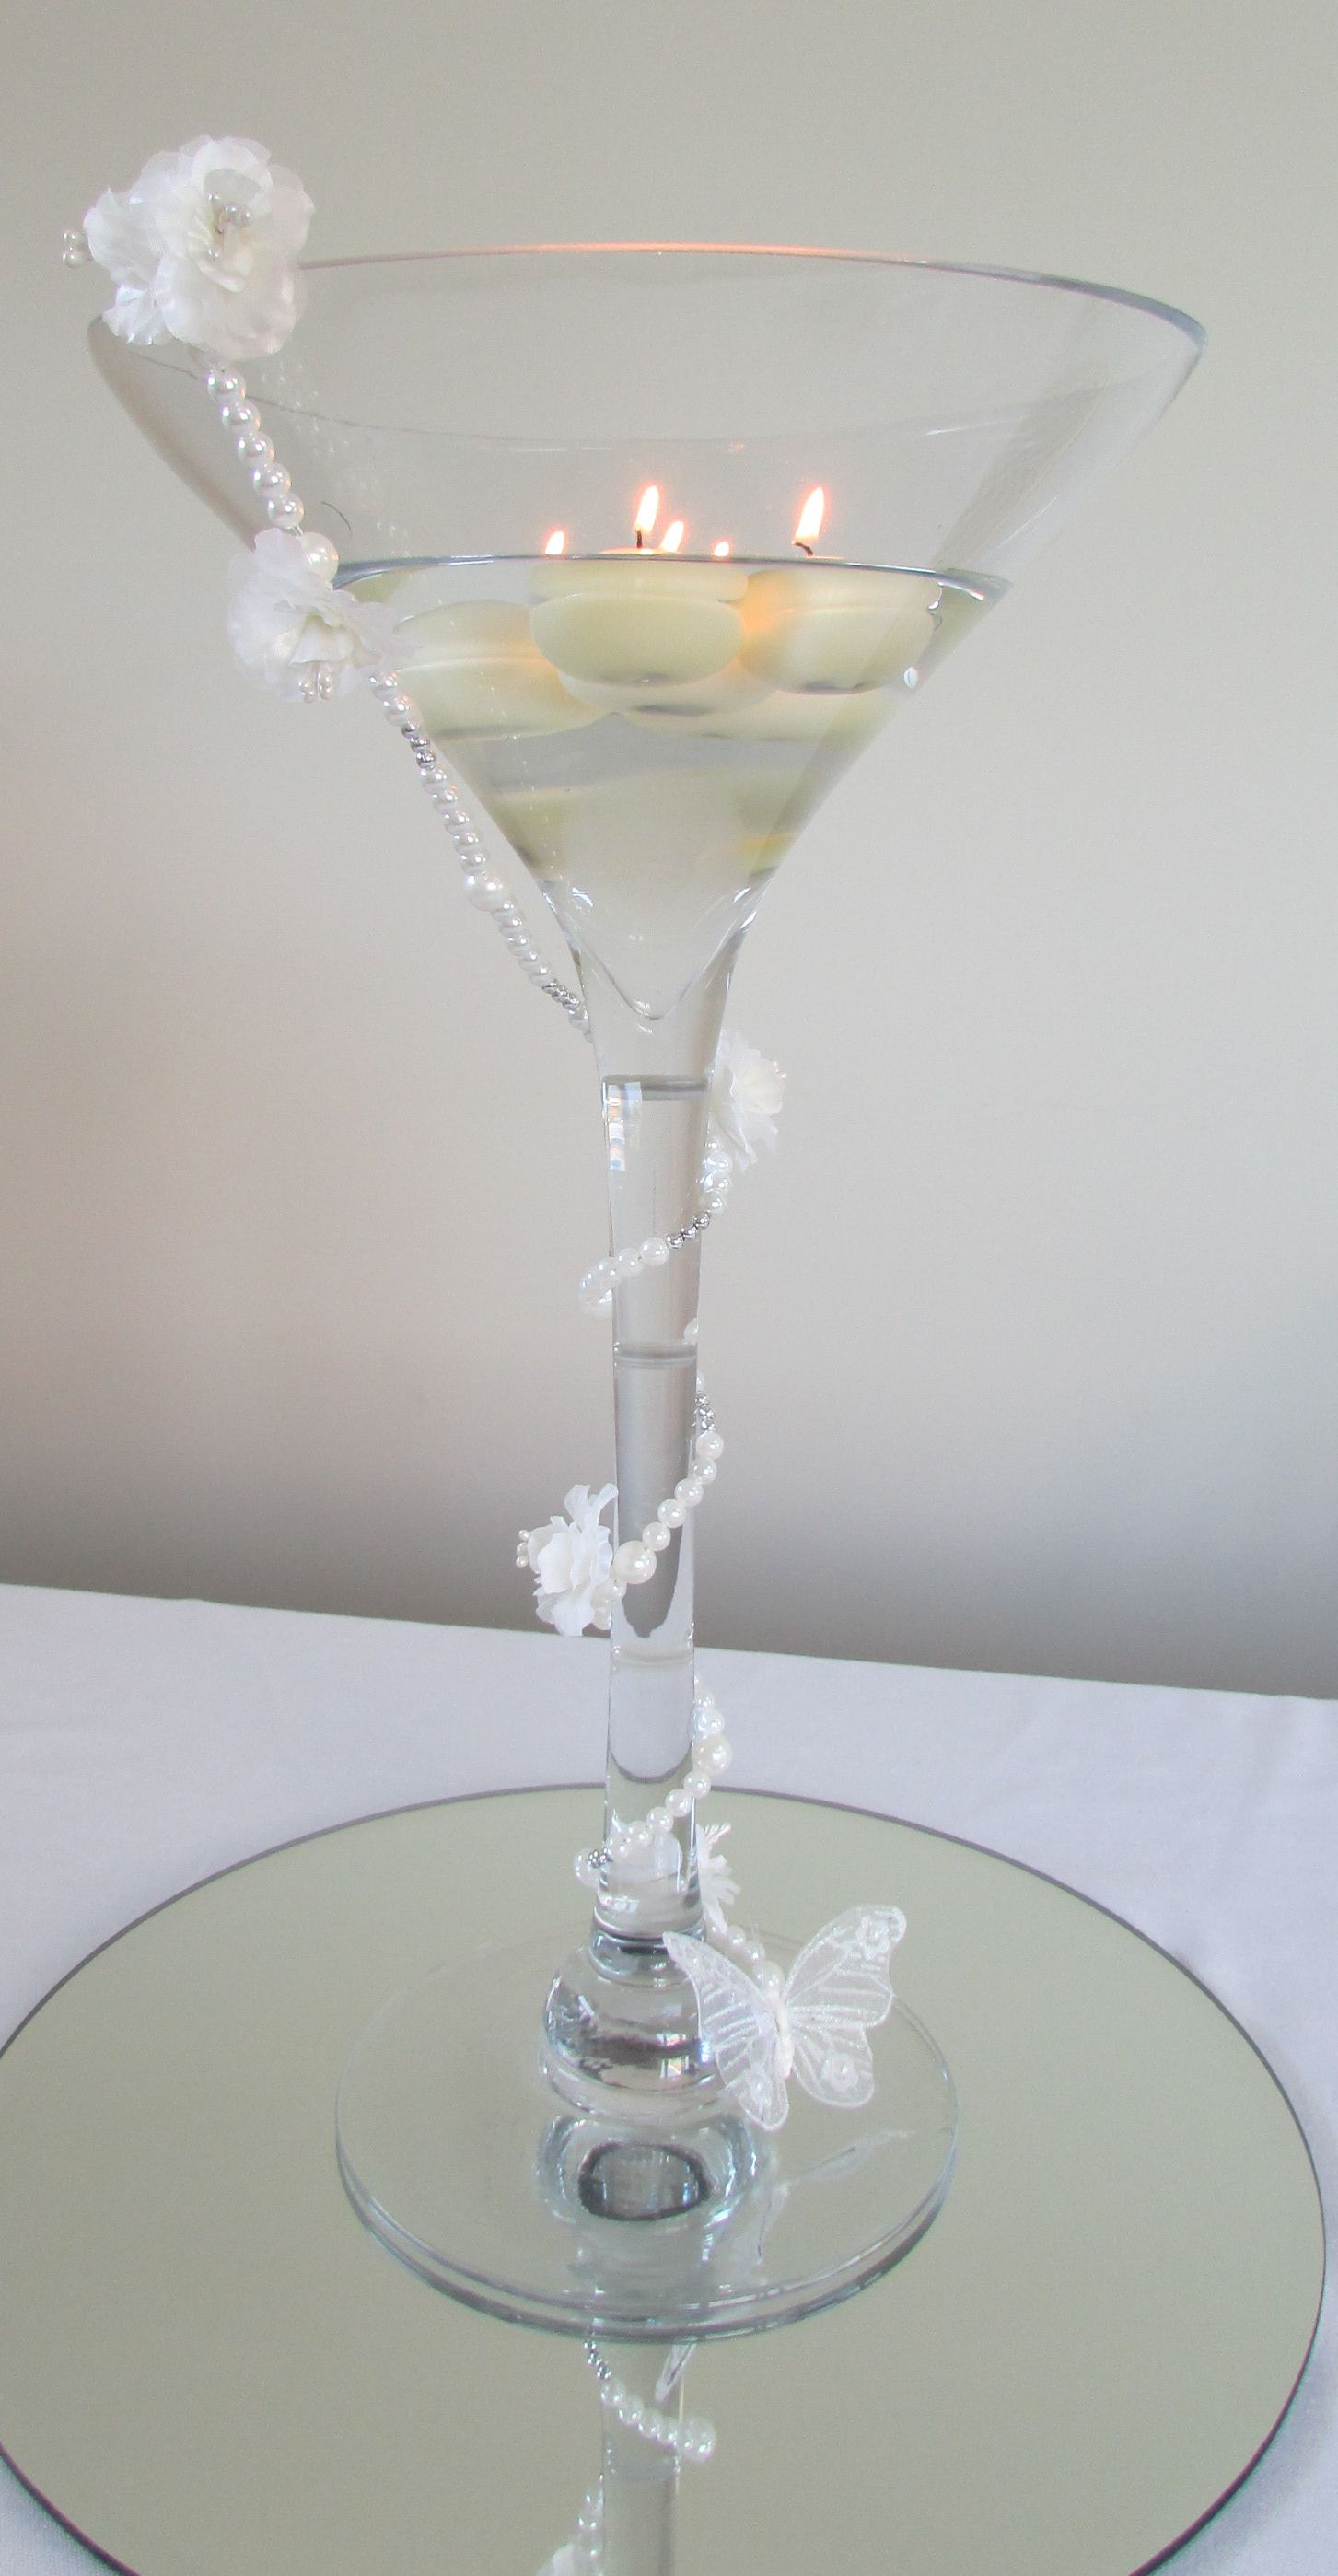 Tall martini vase with floating candles and stem decorated with pearls and white flowers my - Centre de table verre martini ...